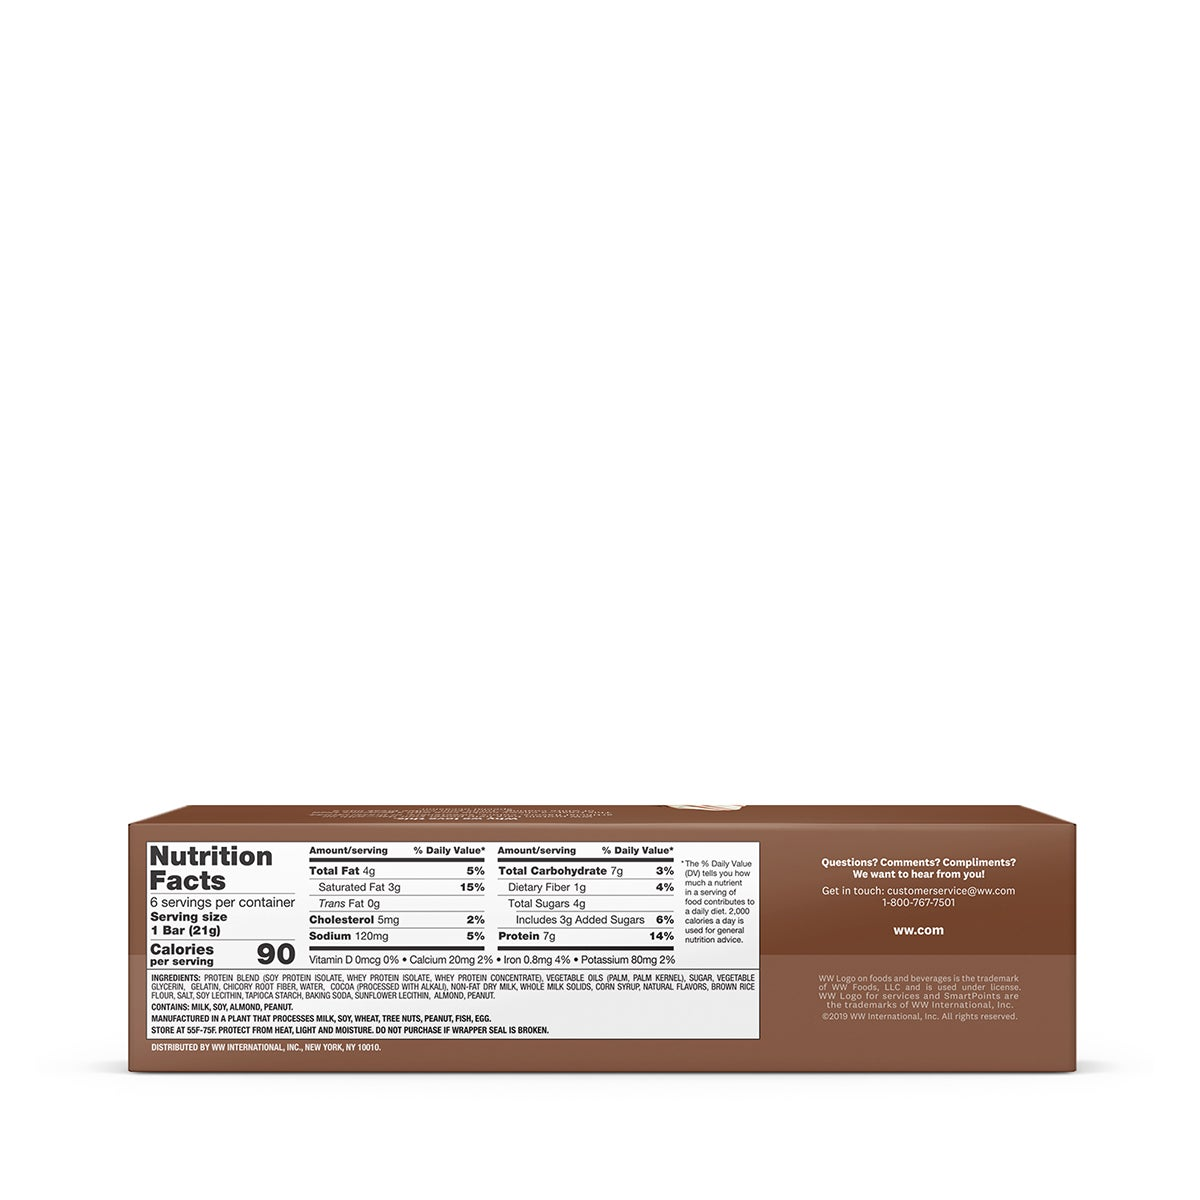 Black and White Baked Protein Bar - back of box